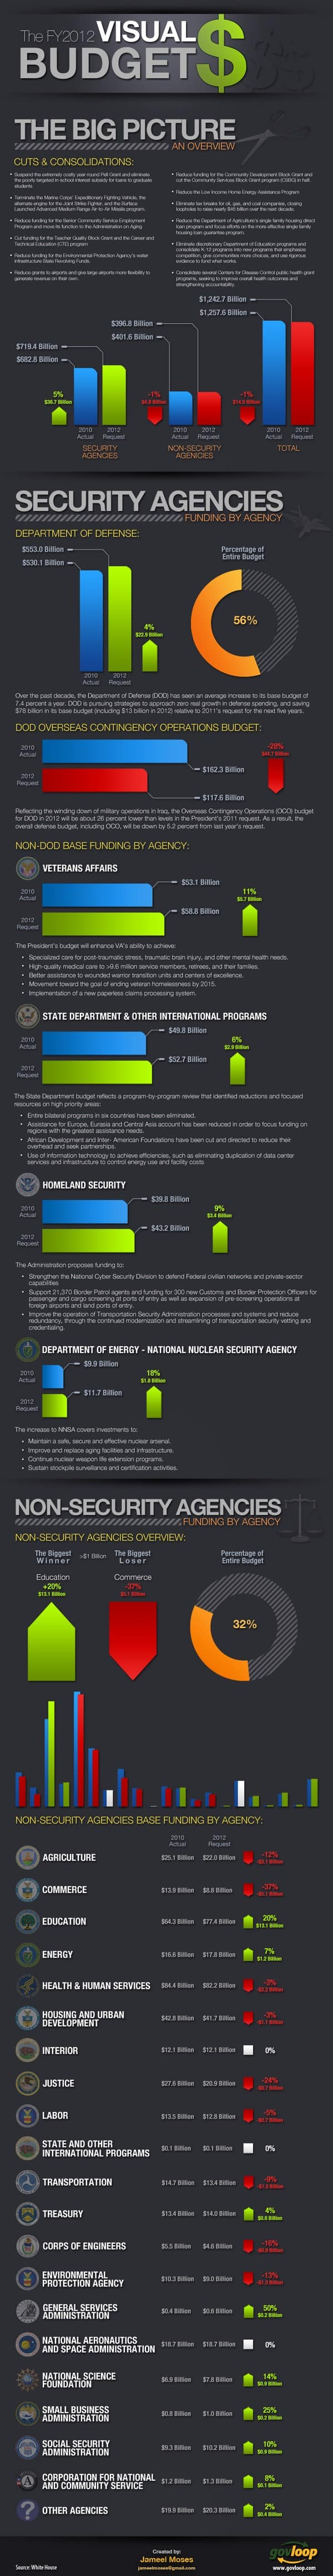 visual budget 2012 infographic